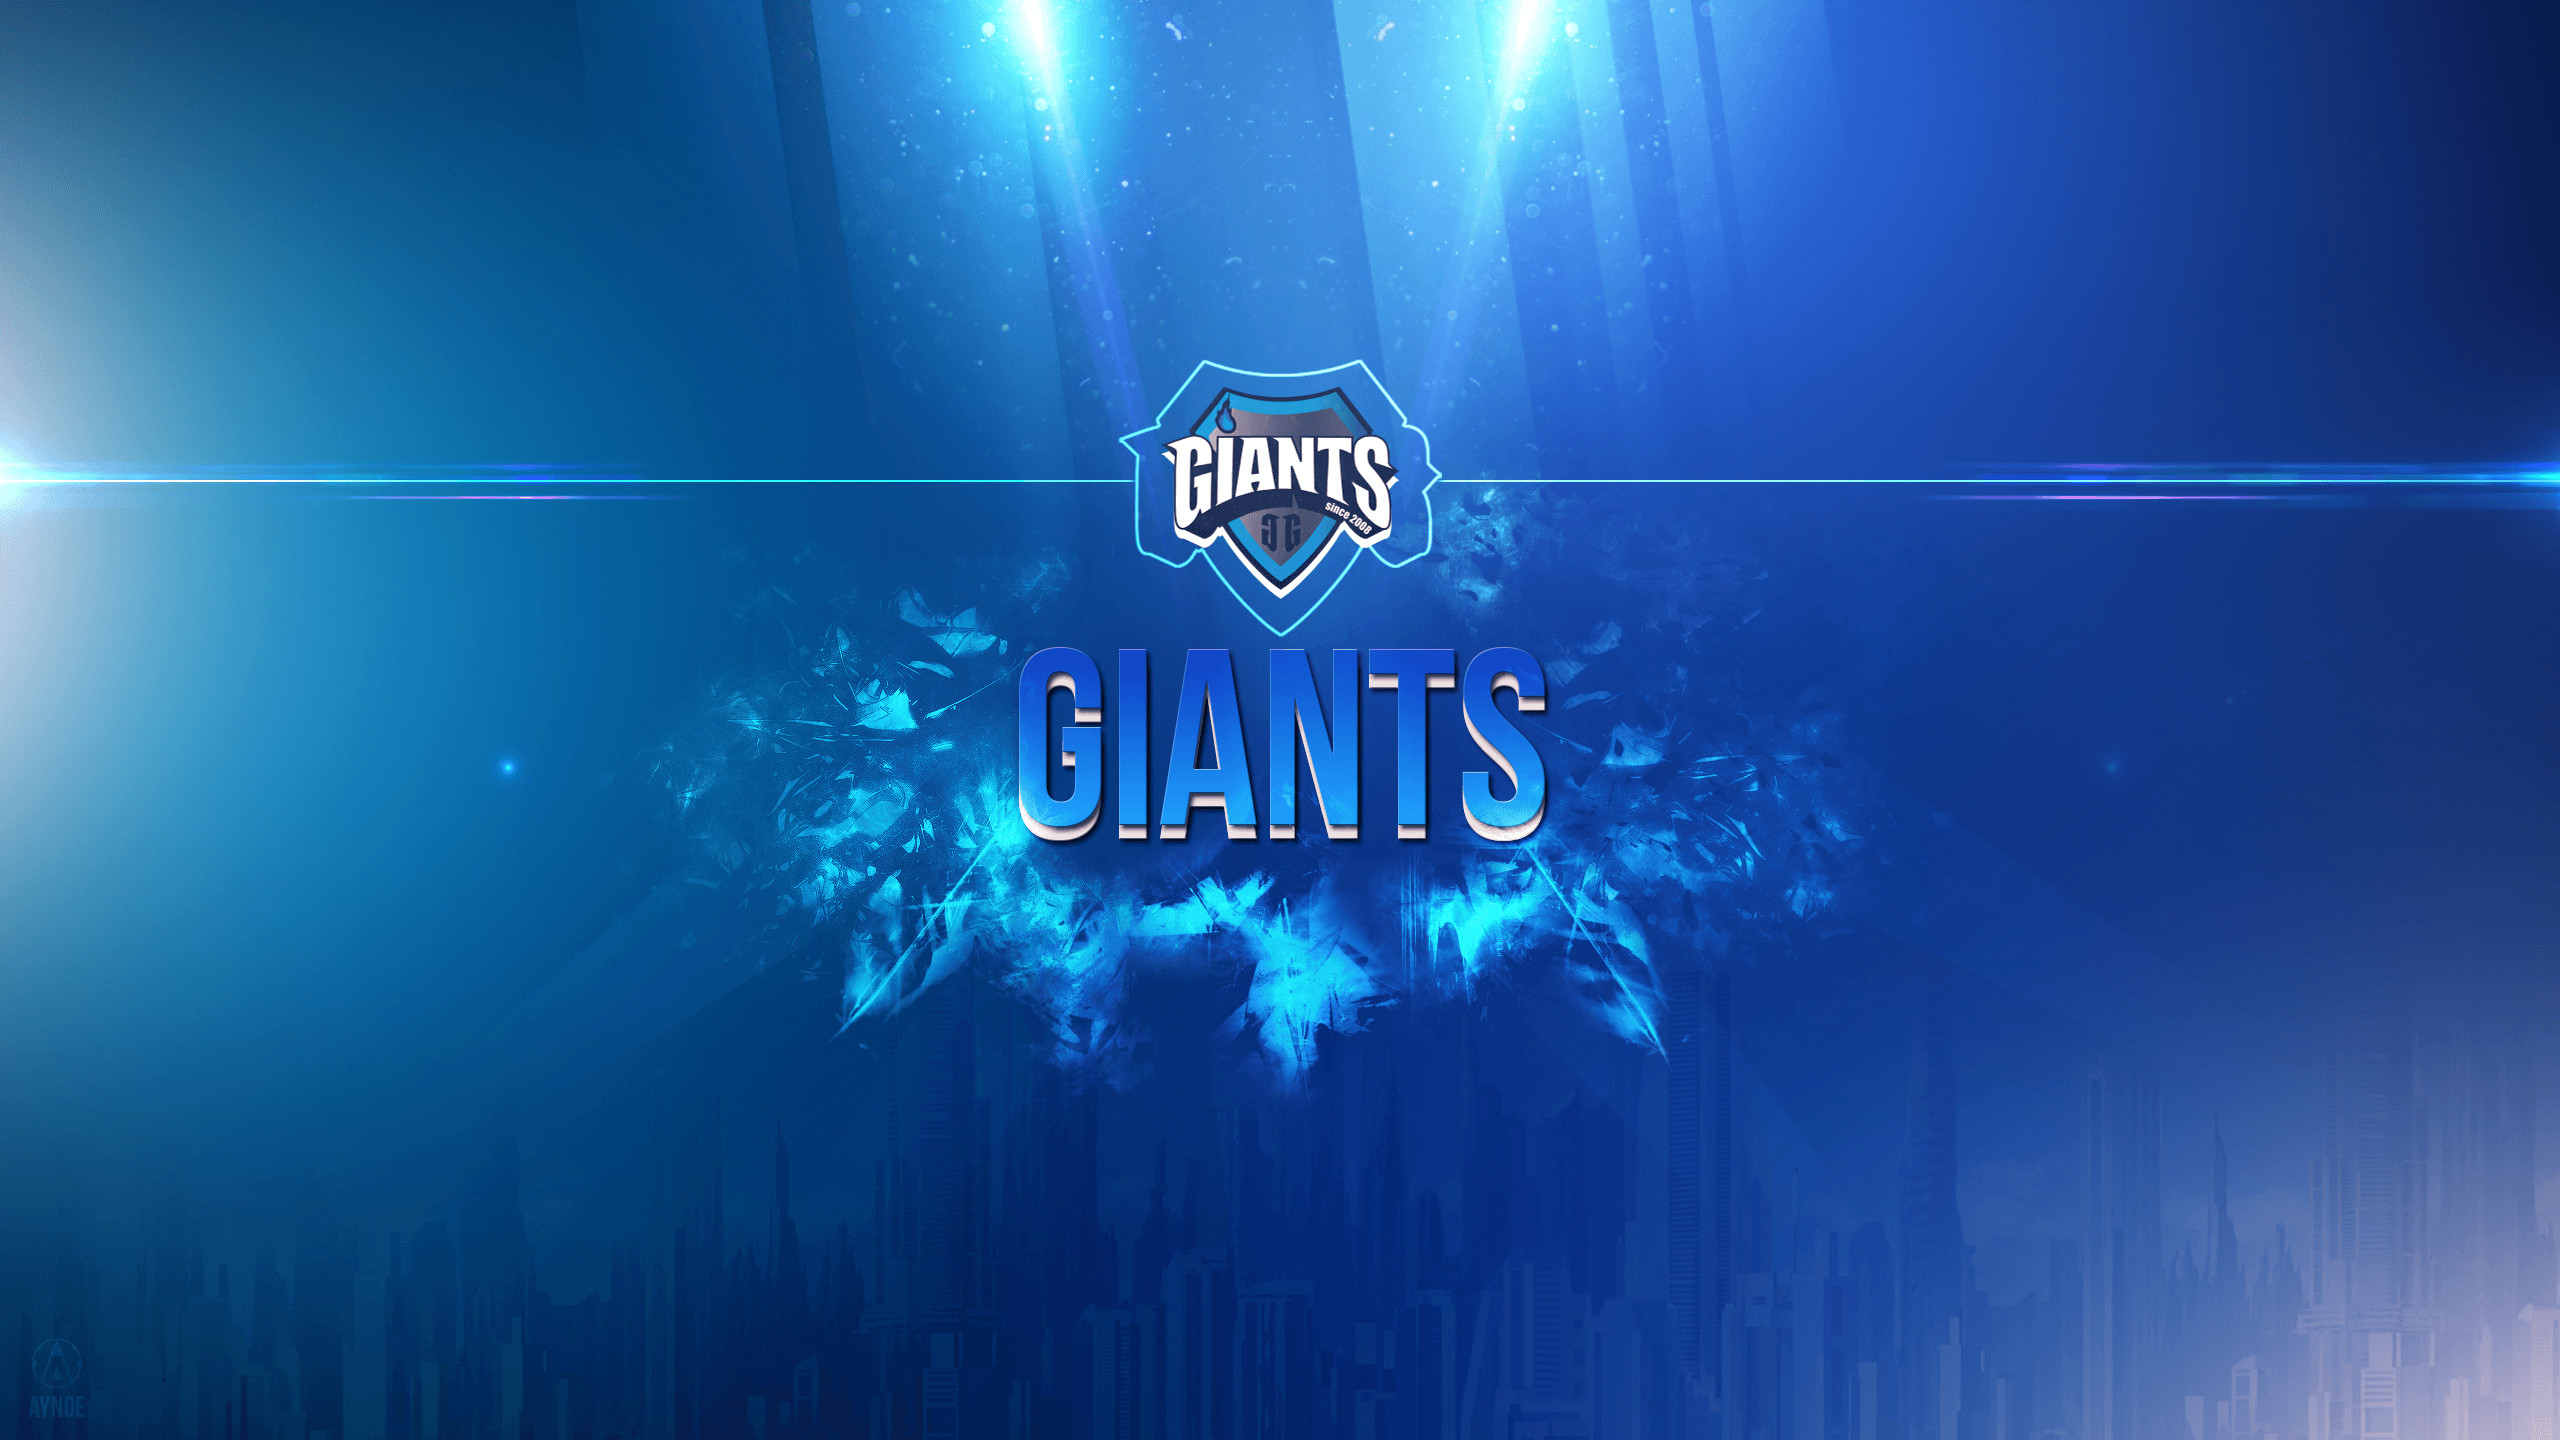 2000x1423 NEW YORK GIANTS nfl football rn wallpaper